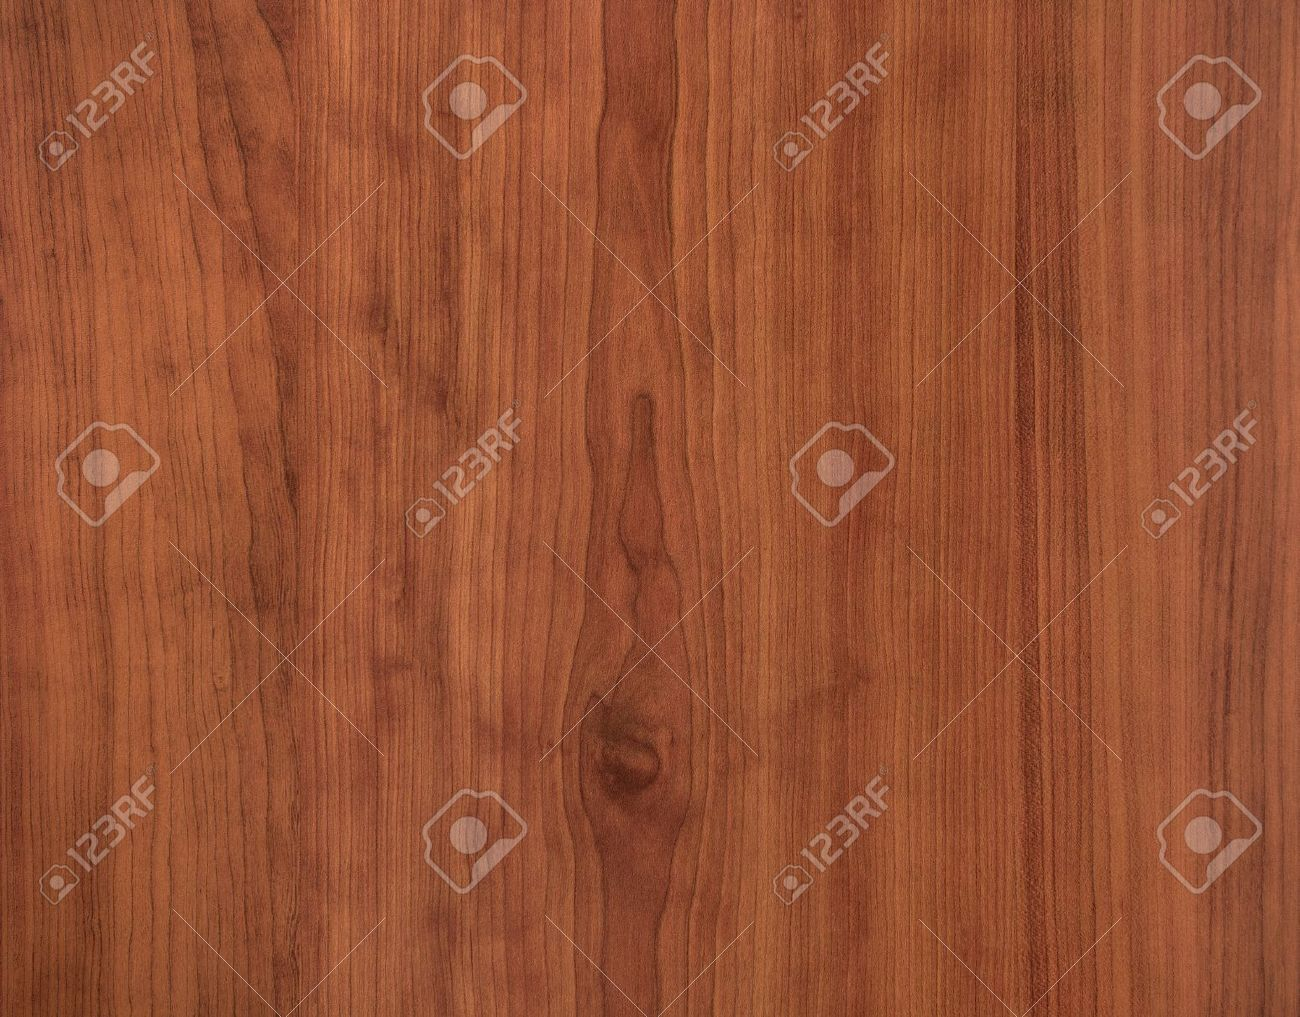 brown wood grain table texture wooden background stock photo